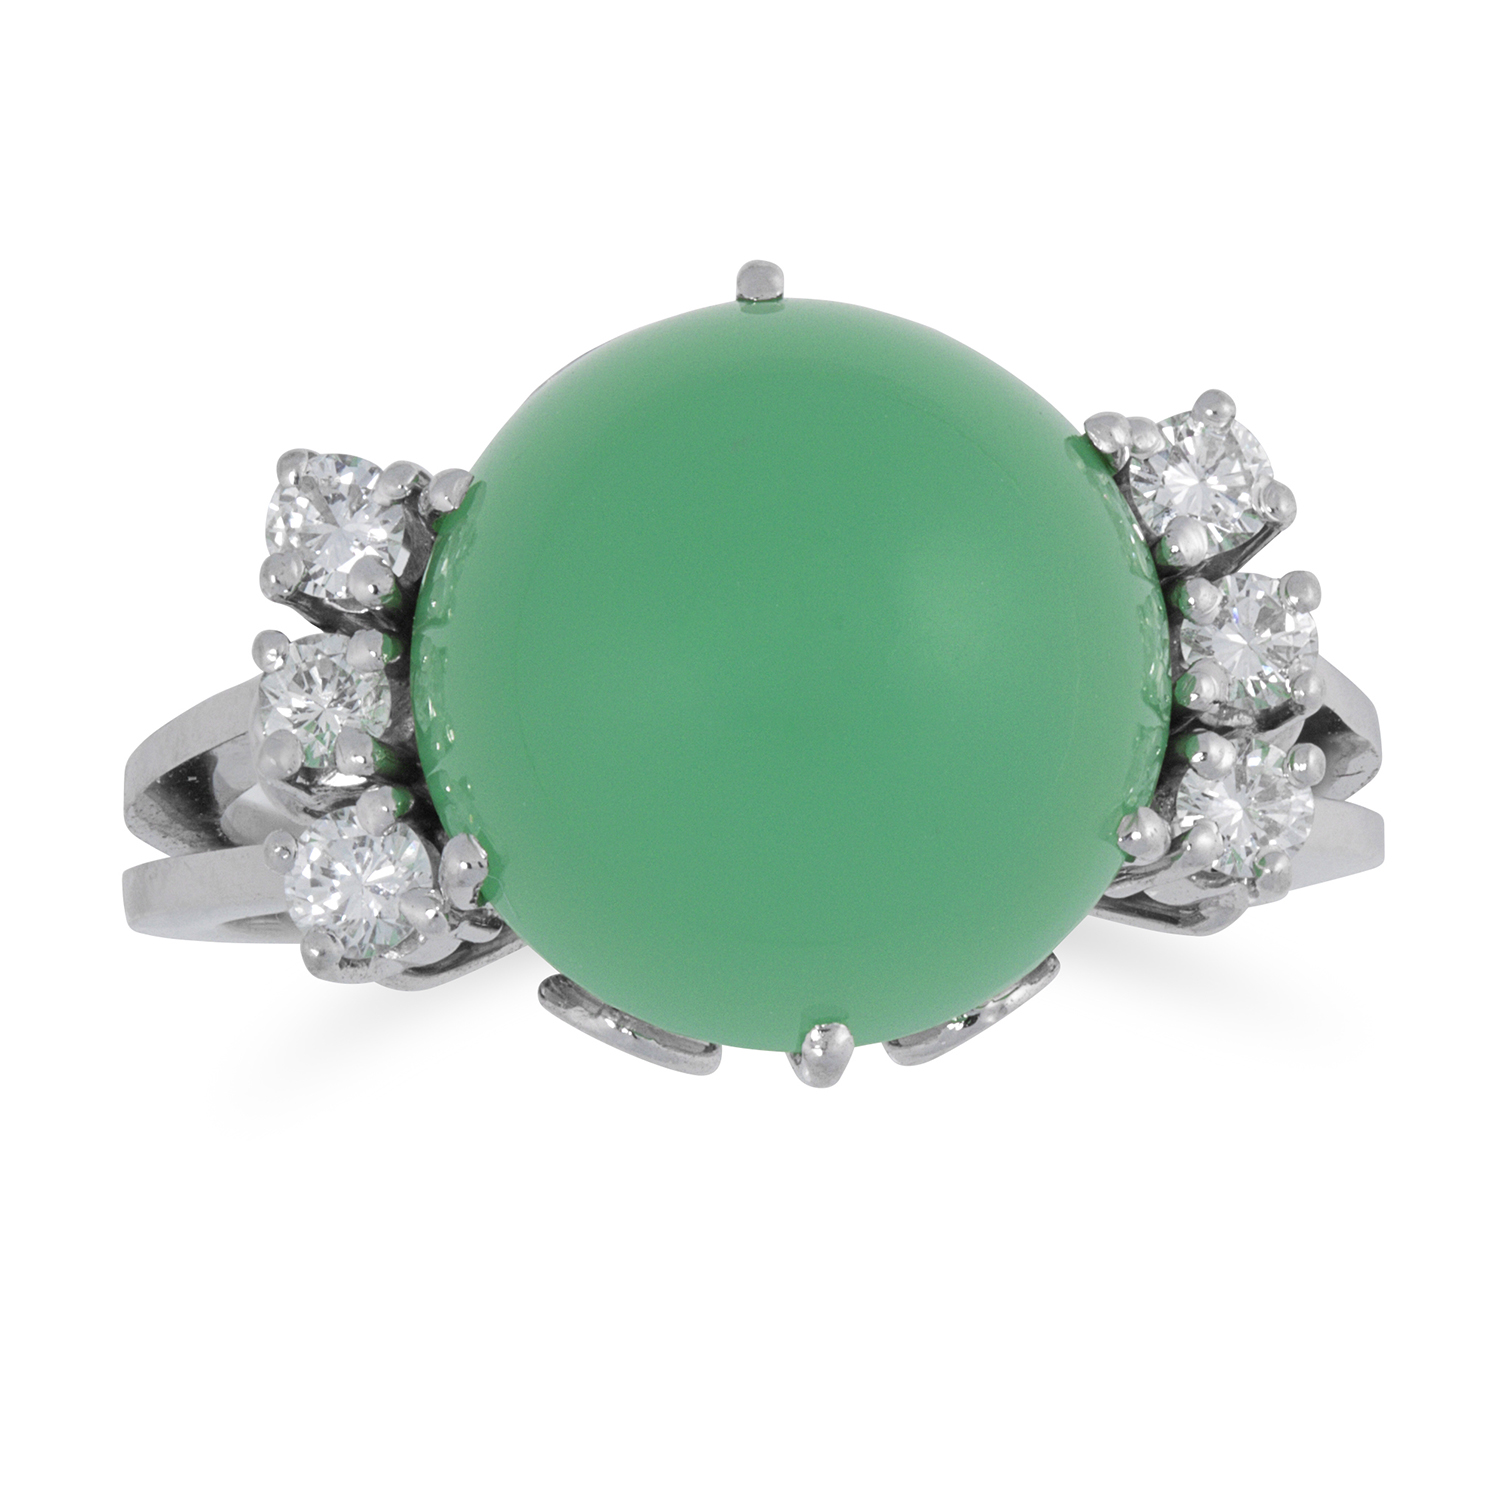 Los 47 - CHRYSOPRASE AND DIAMOND RING set with a cabochon chrysoprase between round cut diamonds, size L / 6,